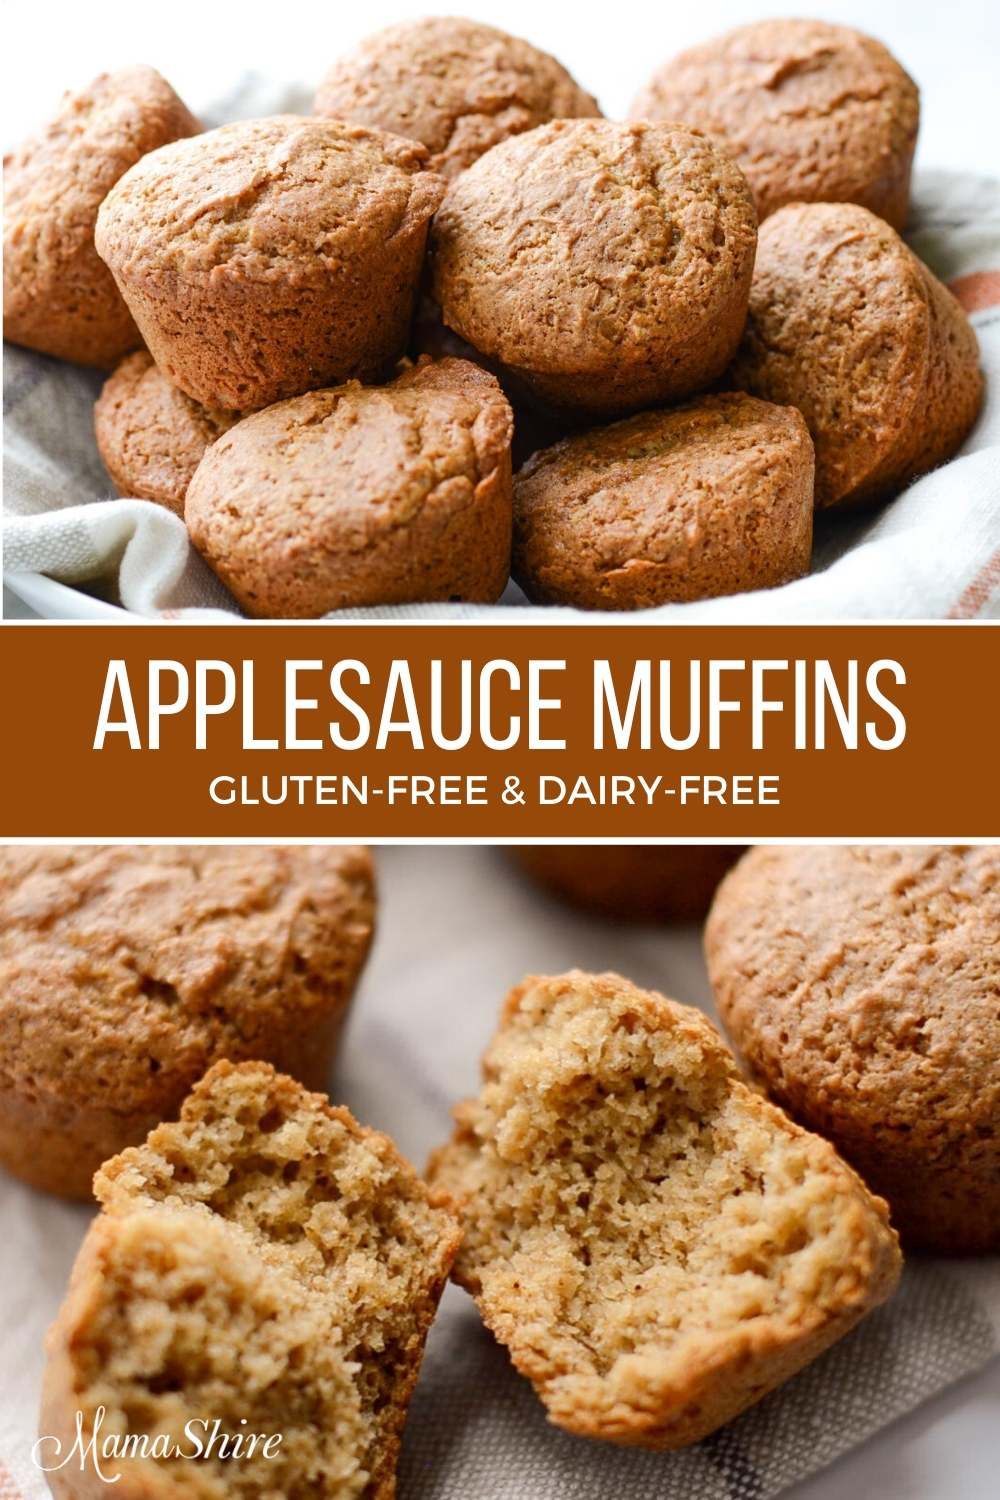 Gluten-Free Muffins with applesauce and cinnamon.